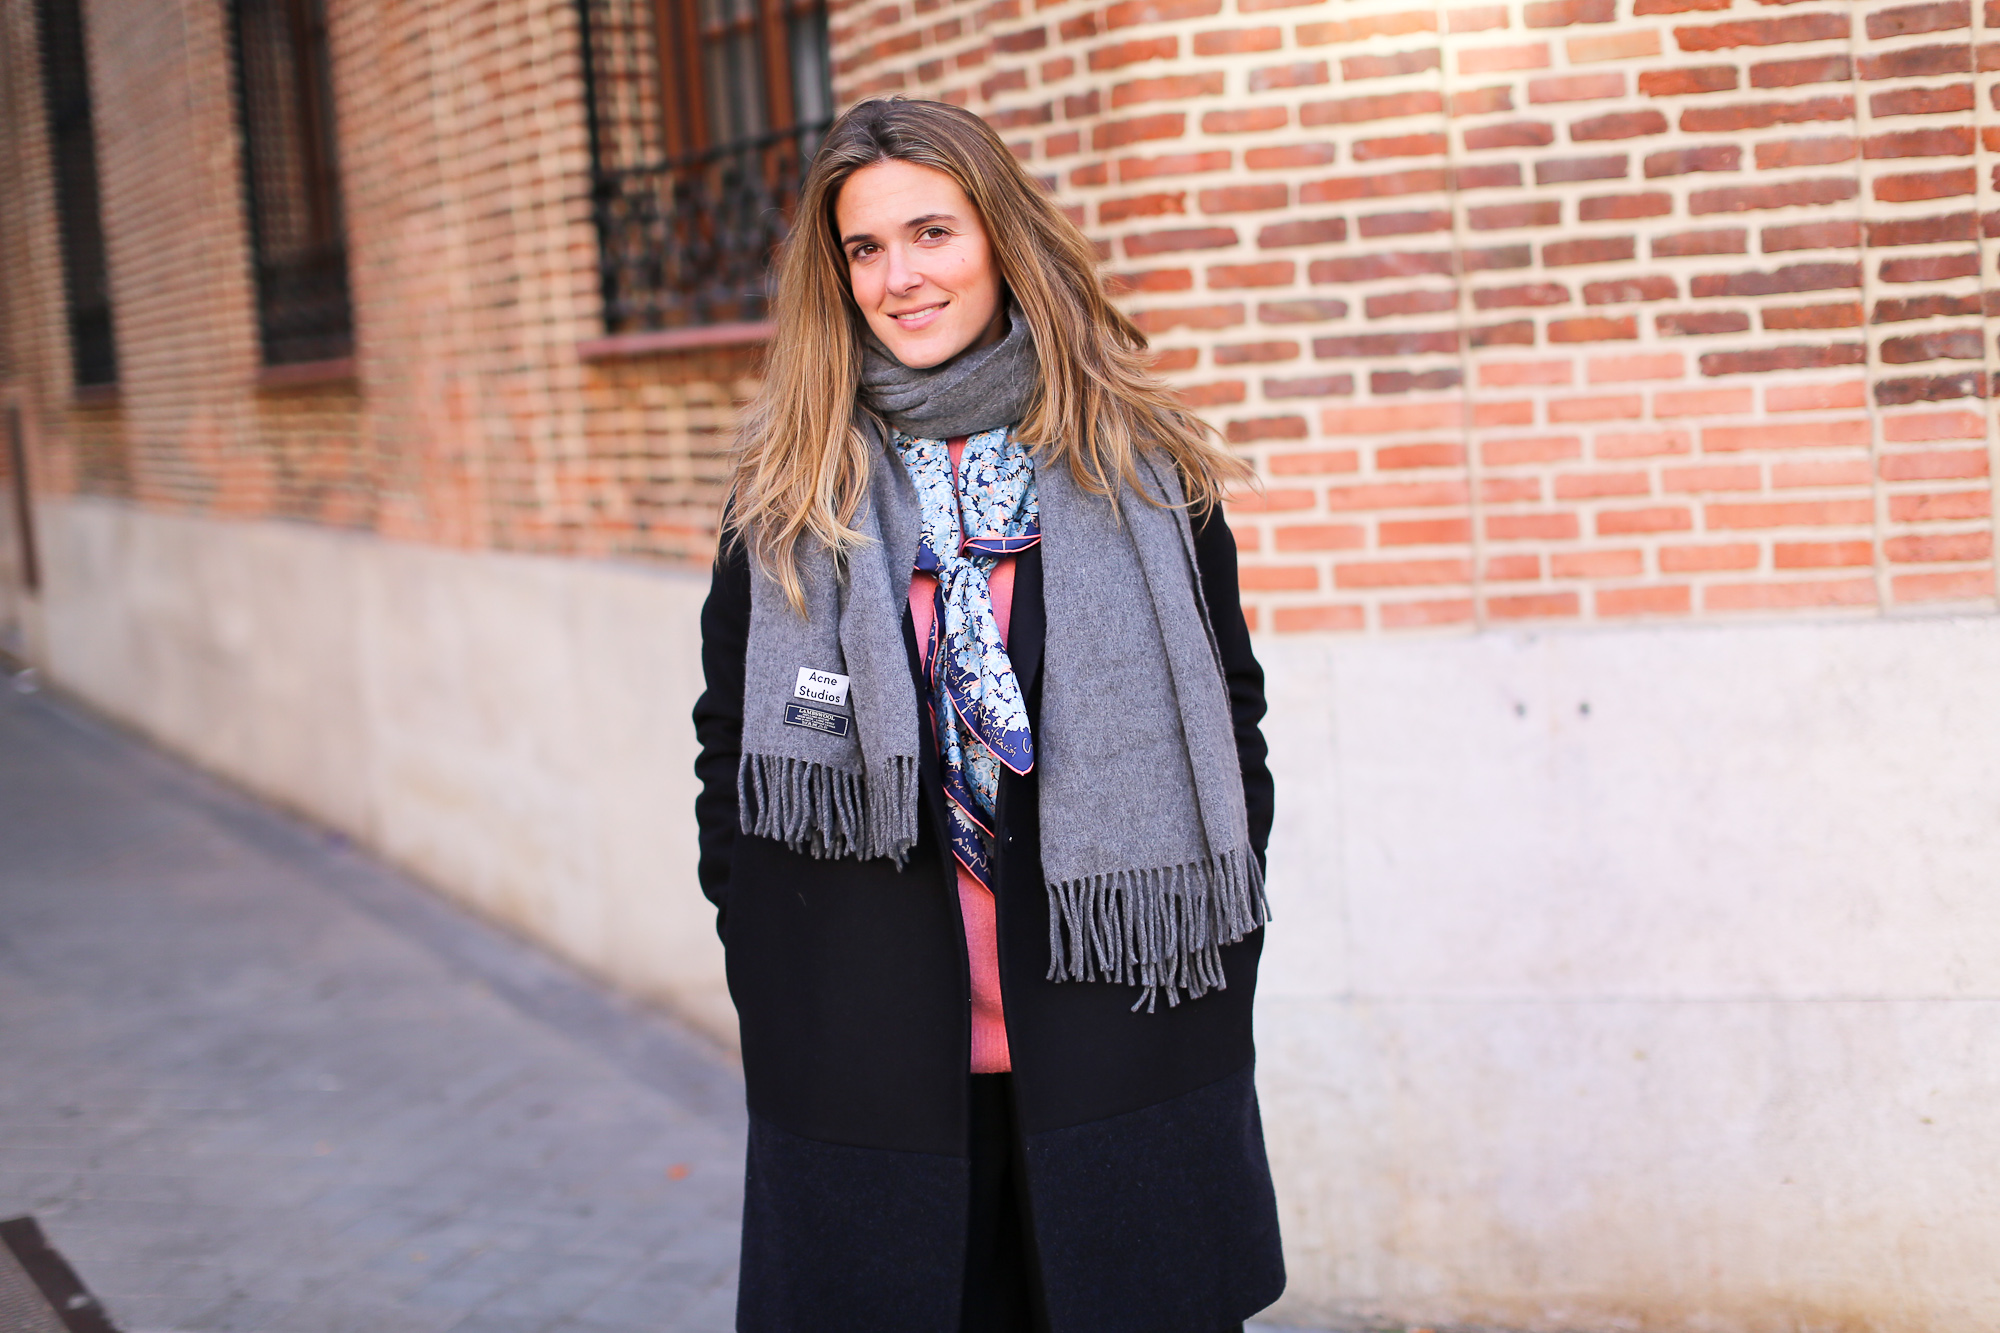 Clochet_streetstyle_fashionblogger_YouMustCreateculottetrousers_andotherstoriespinkknit_coswoolcoat-2